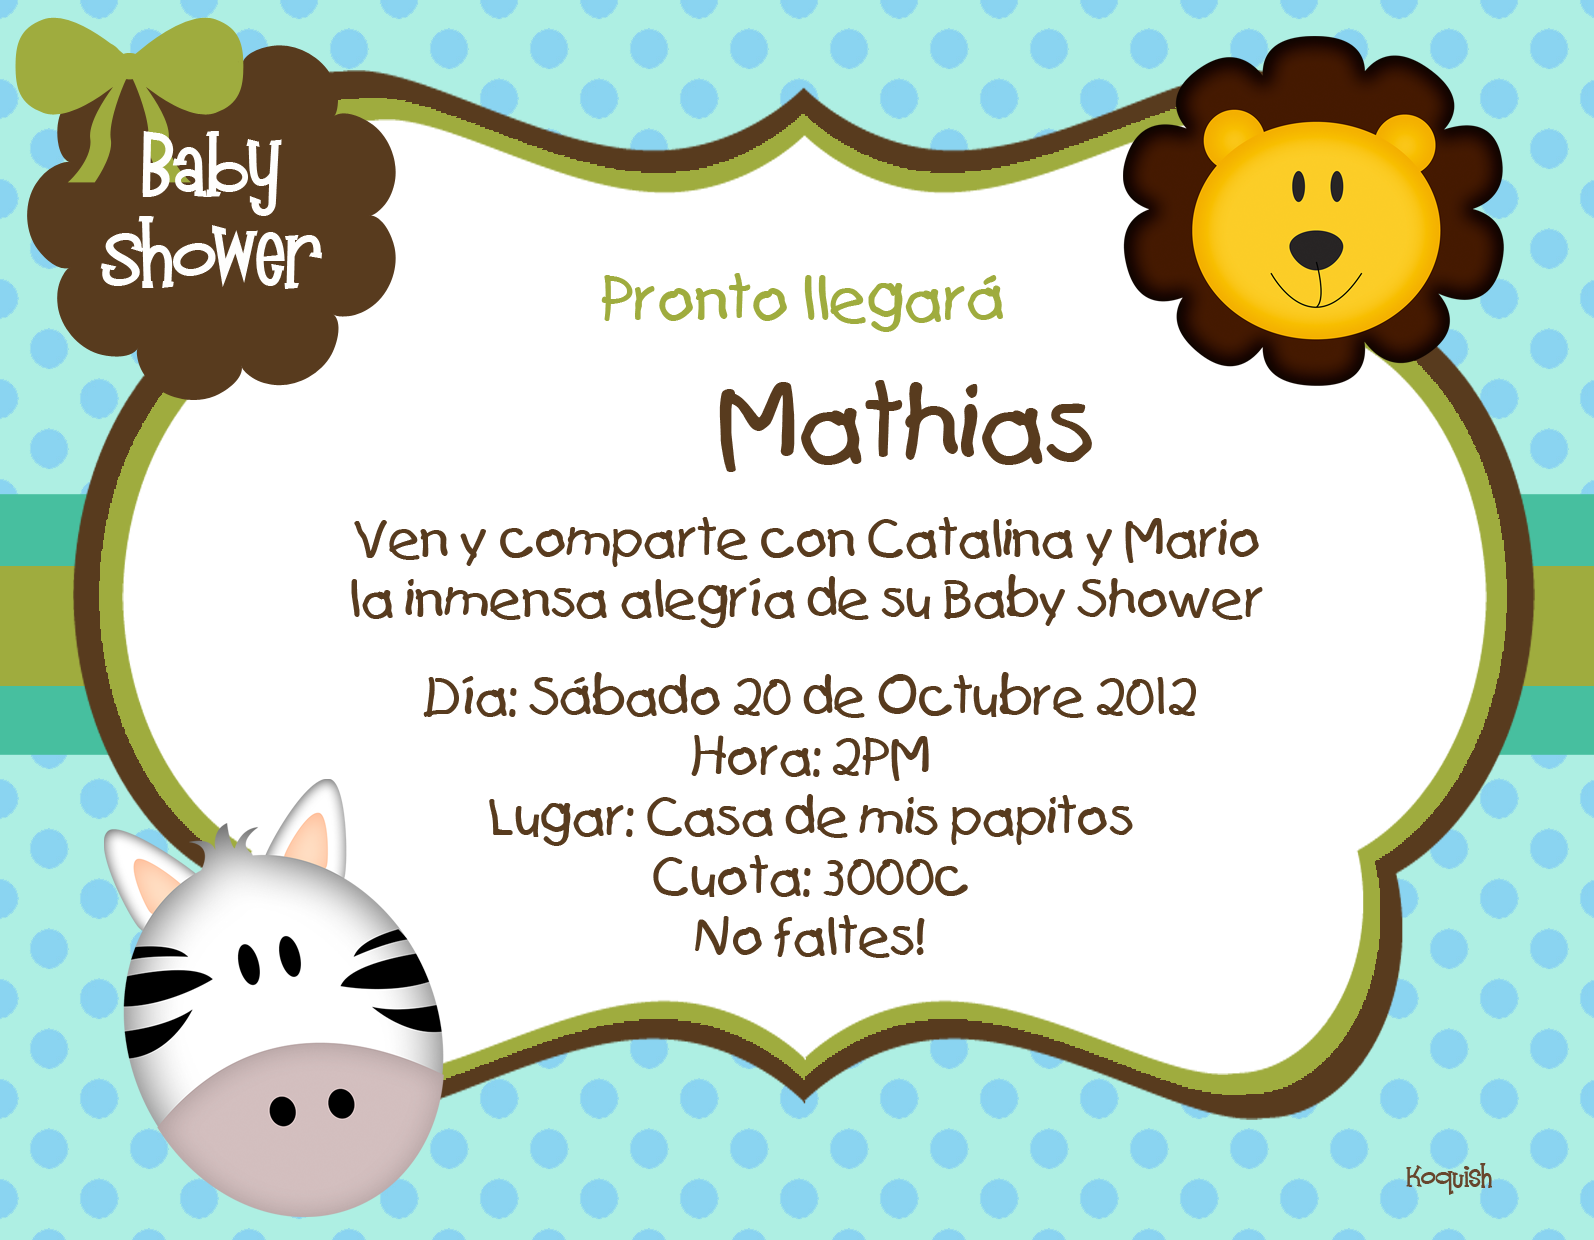 0d26a69ab2bb8 koquish invitaciones digitales para baby shower invitaciones para baby  shower 1594x1240